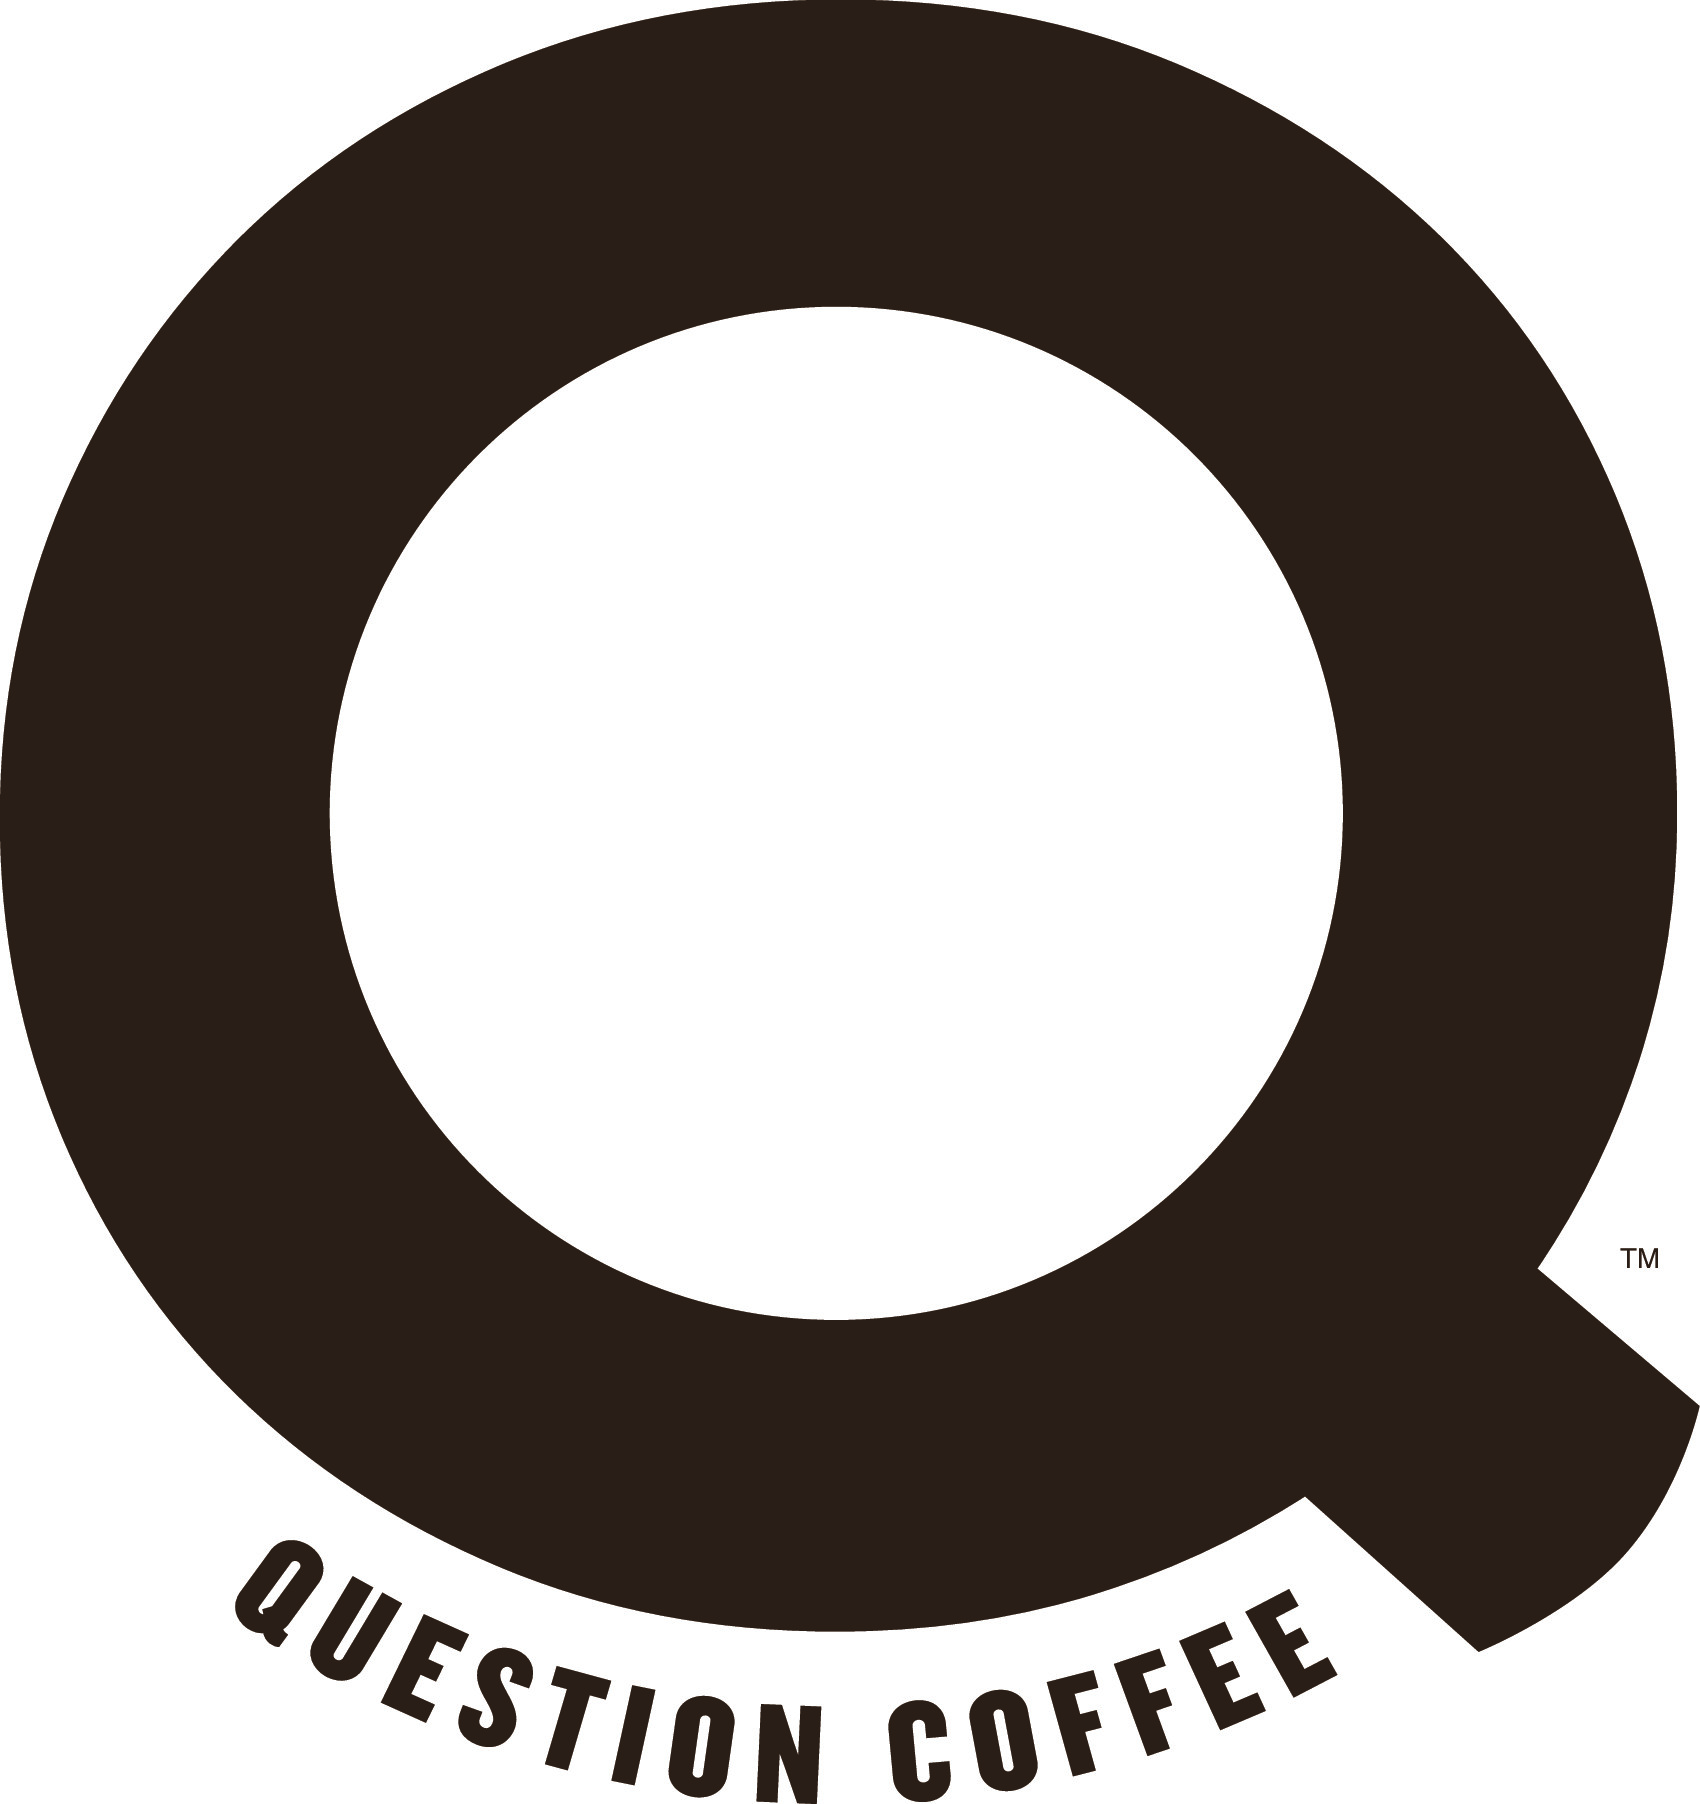 Question Coffee logo brown.jpg